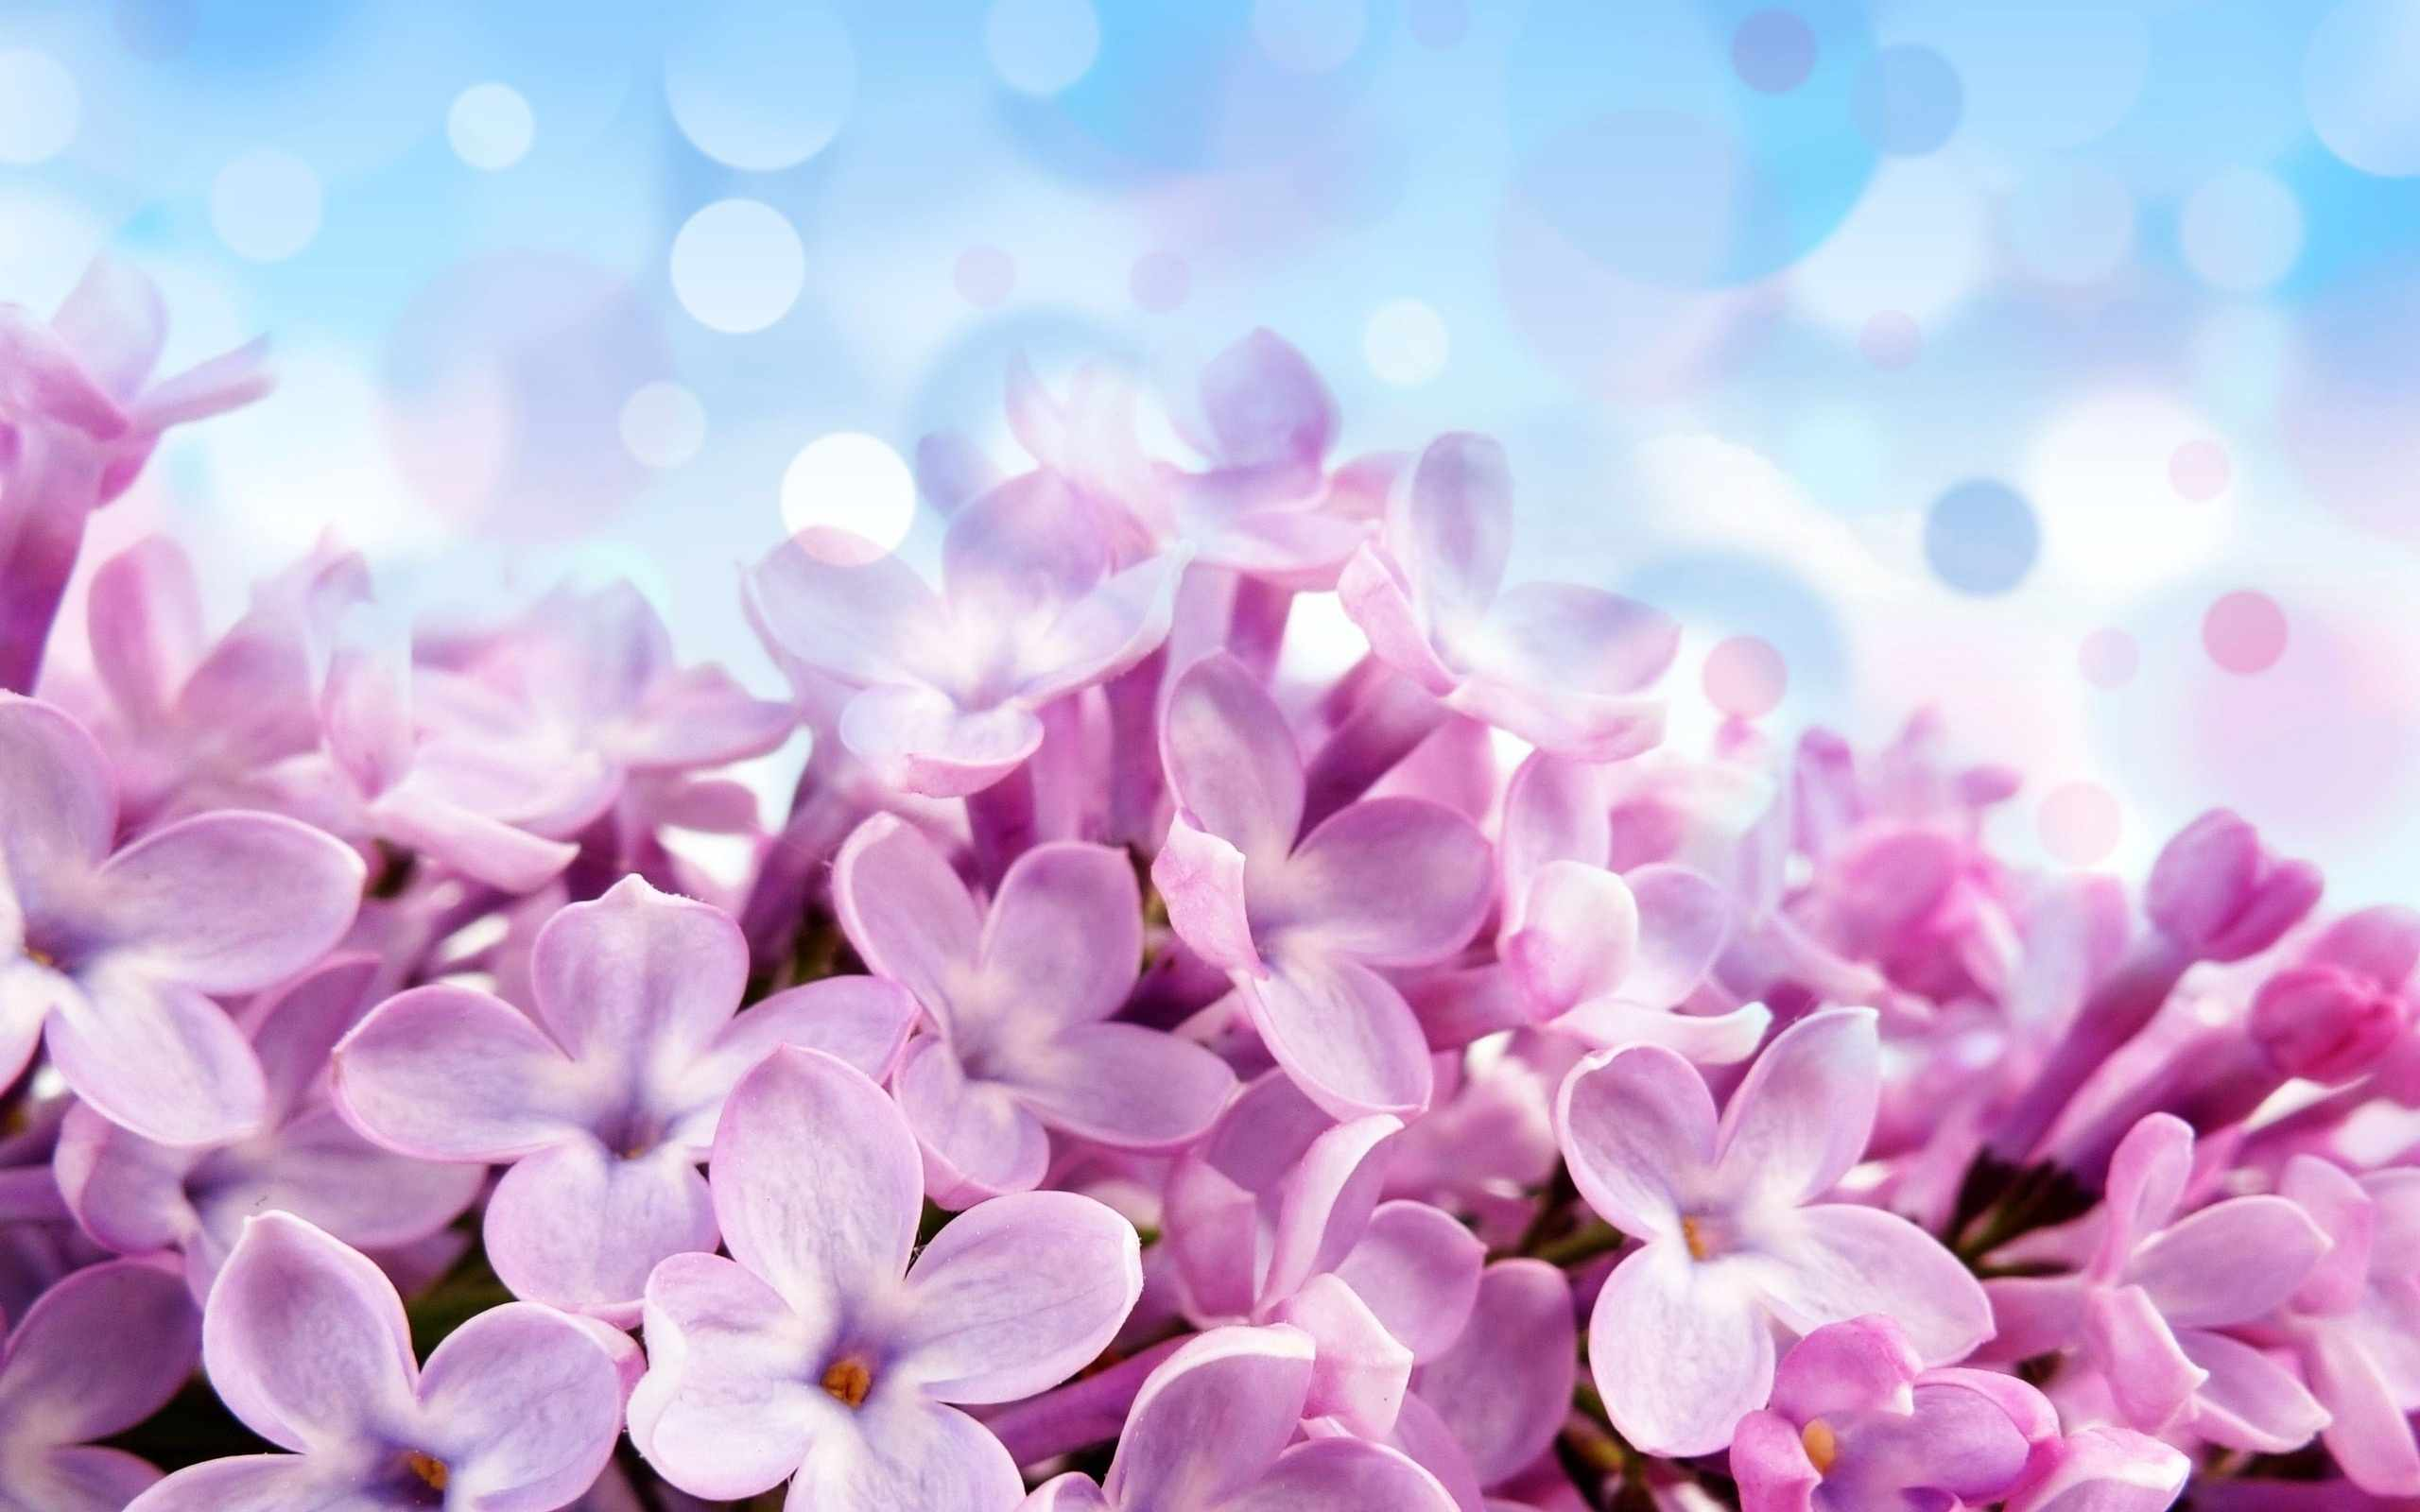 22 beautiful flower wallpapers purple lilac flowers by fanpop mightylinksfo